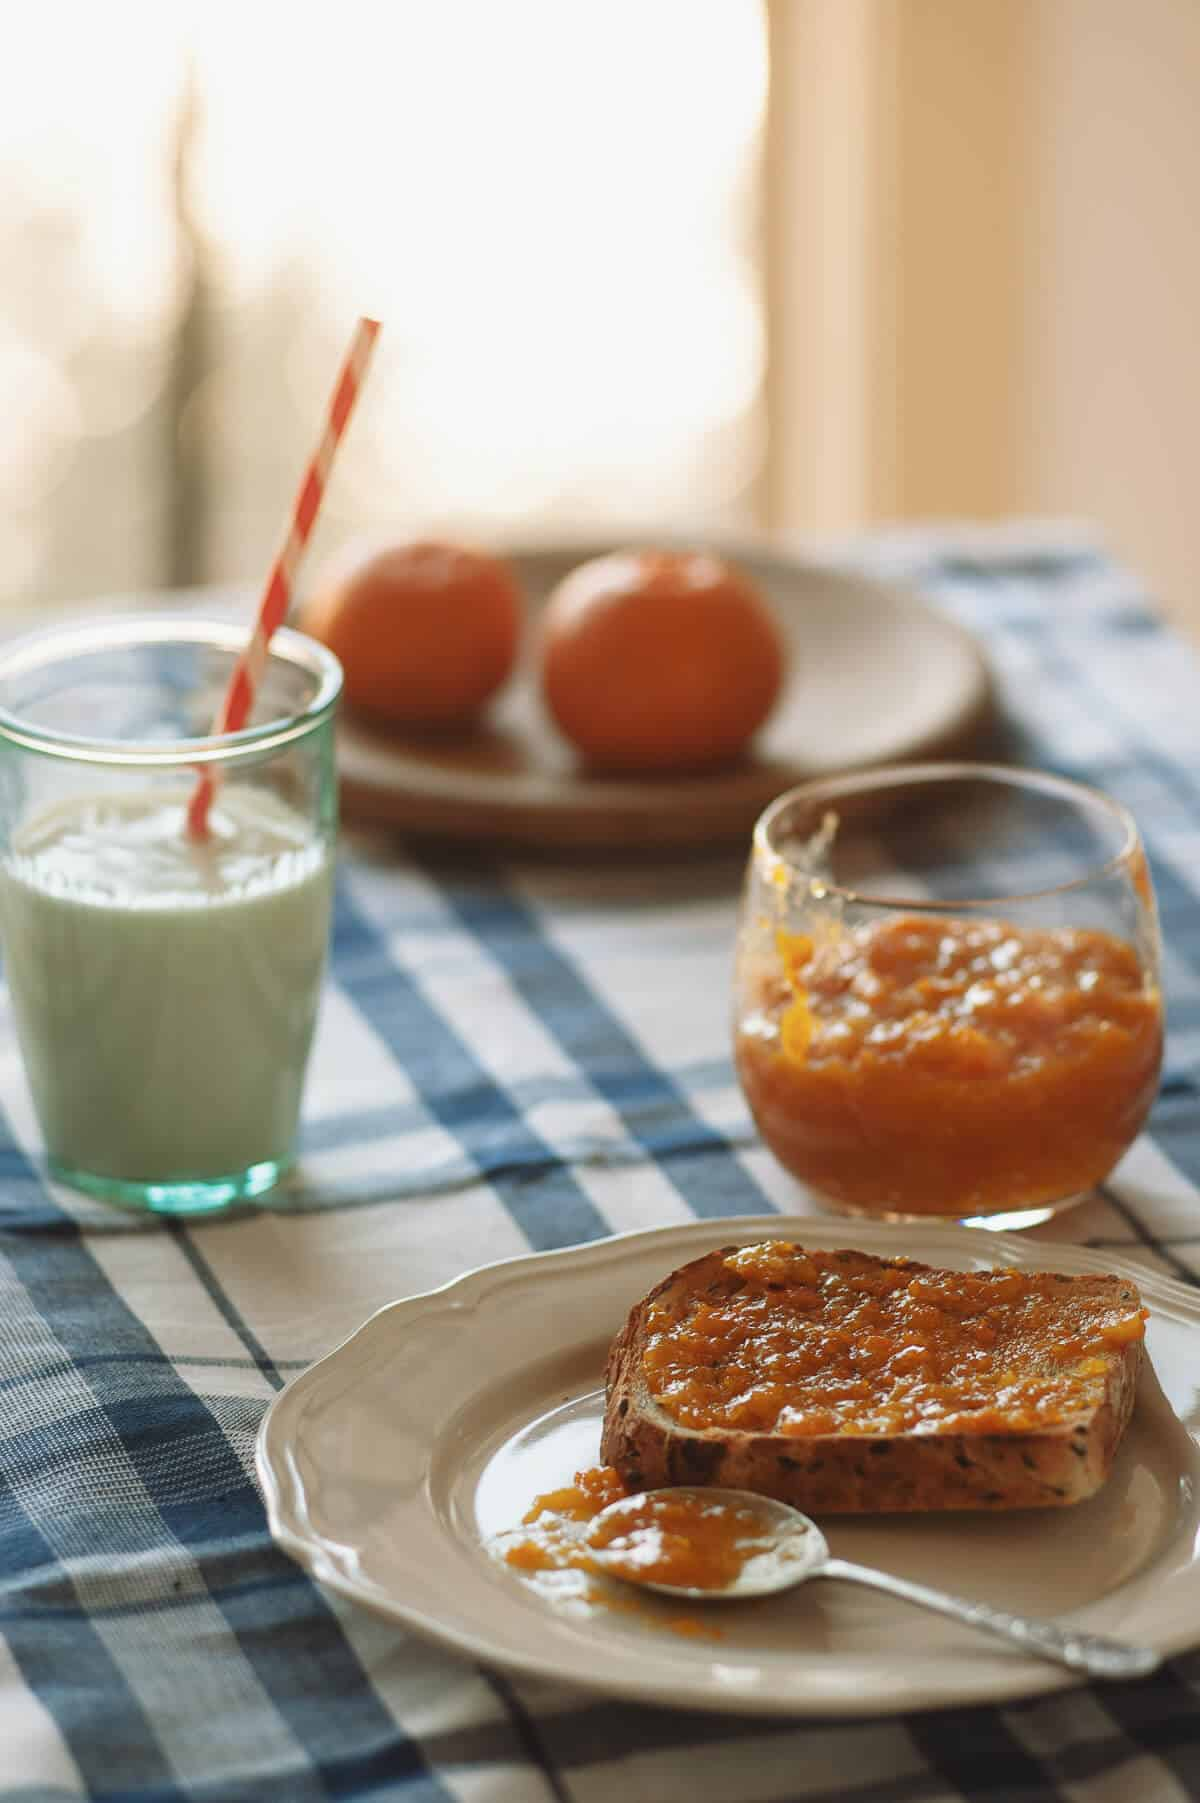 a slice of toast with mandarin jam served on a plate with a glass of milk